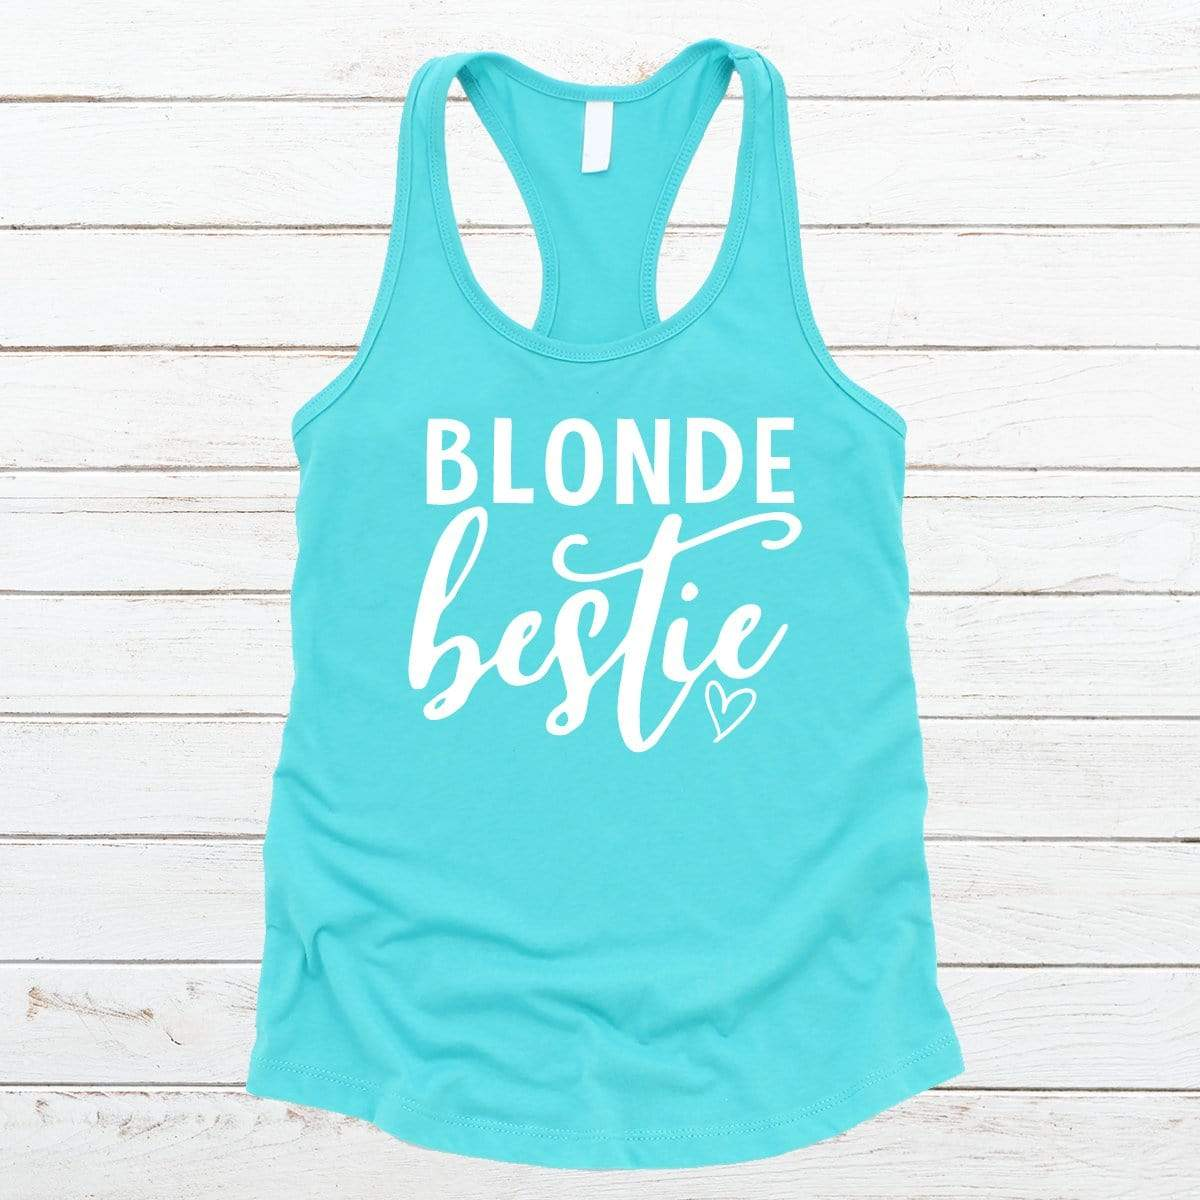 Blonde Bestie V-Necks And Tank Tops